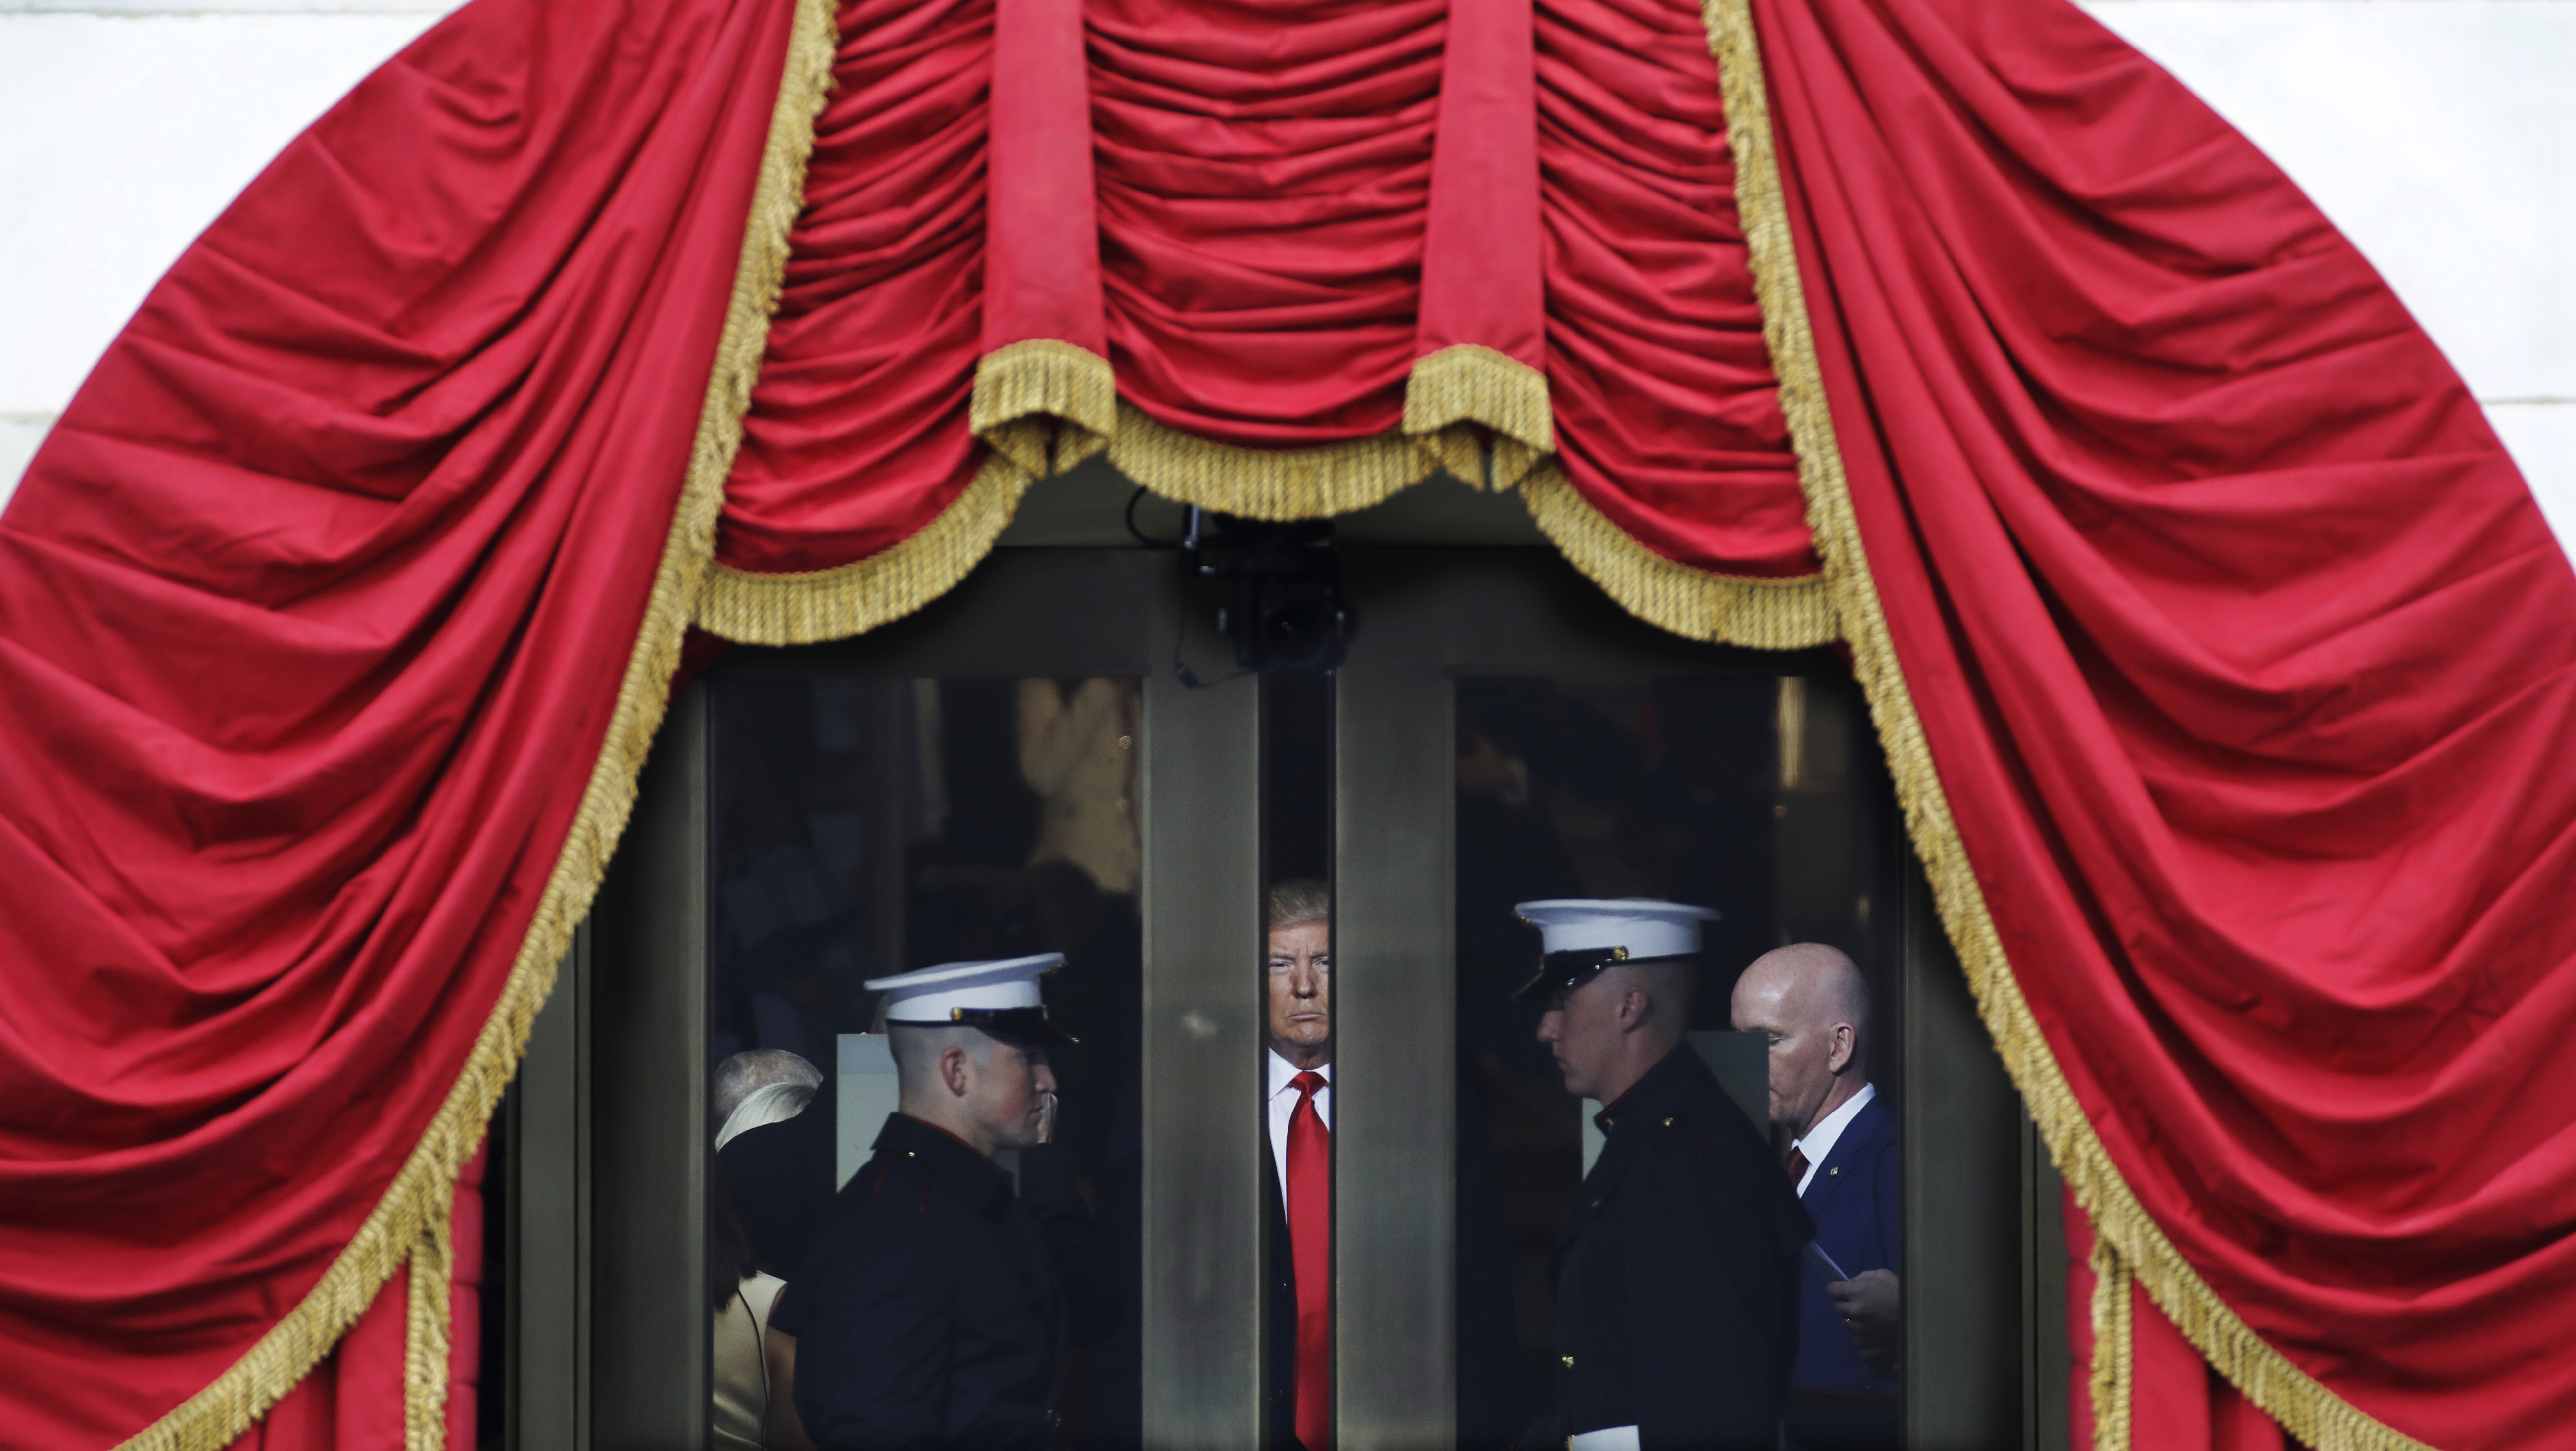 foto : patrick semansky : president-elect donald trump waits to step out onto the portico for his presidential inauguration at the u.s. capitol in washington, friday, jan. 20, 2017. (ap photo/patrick semansky)